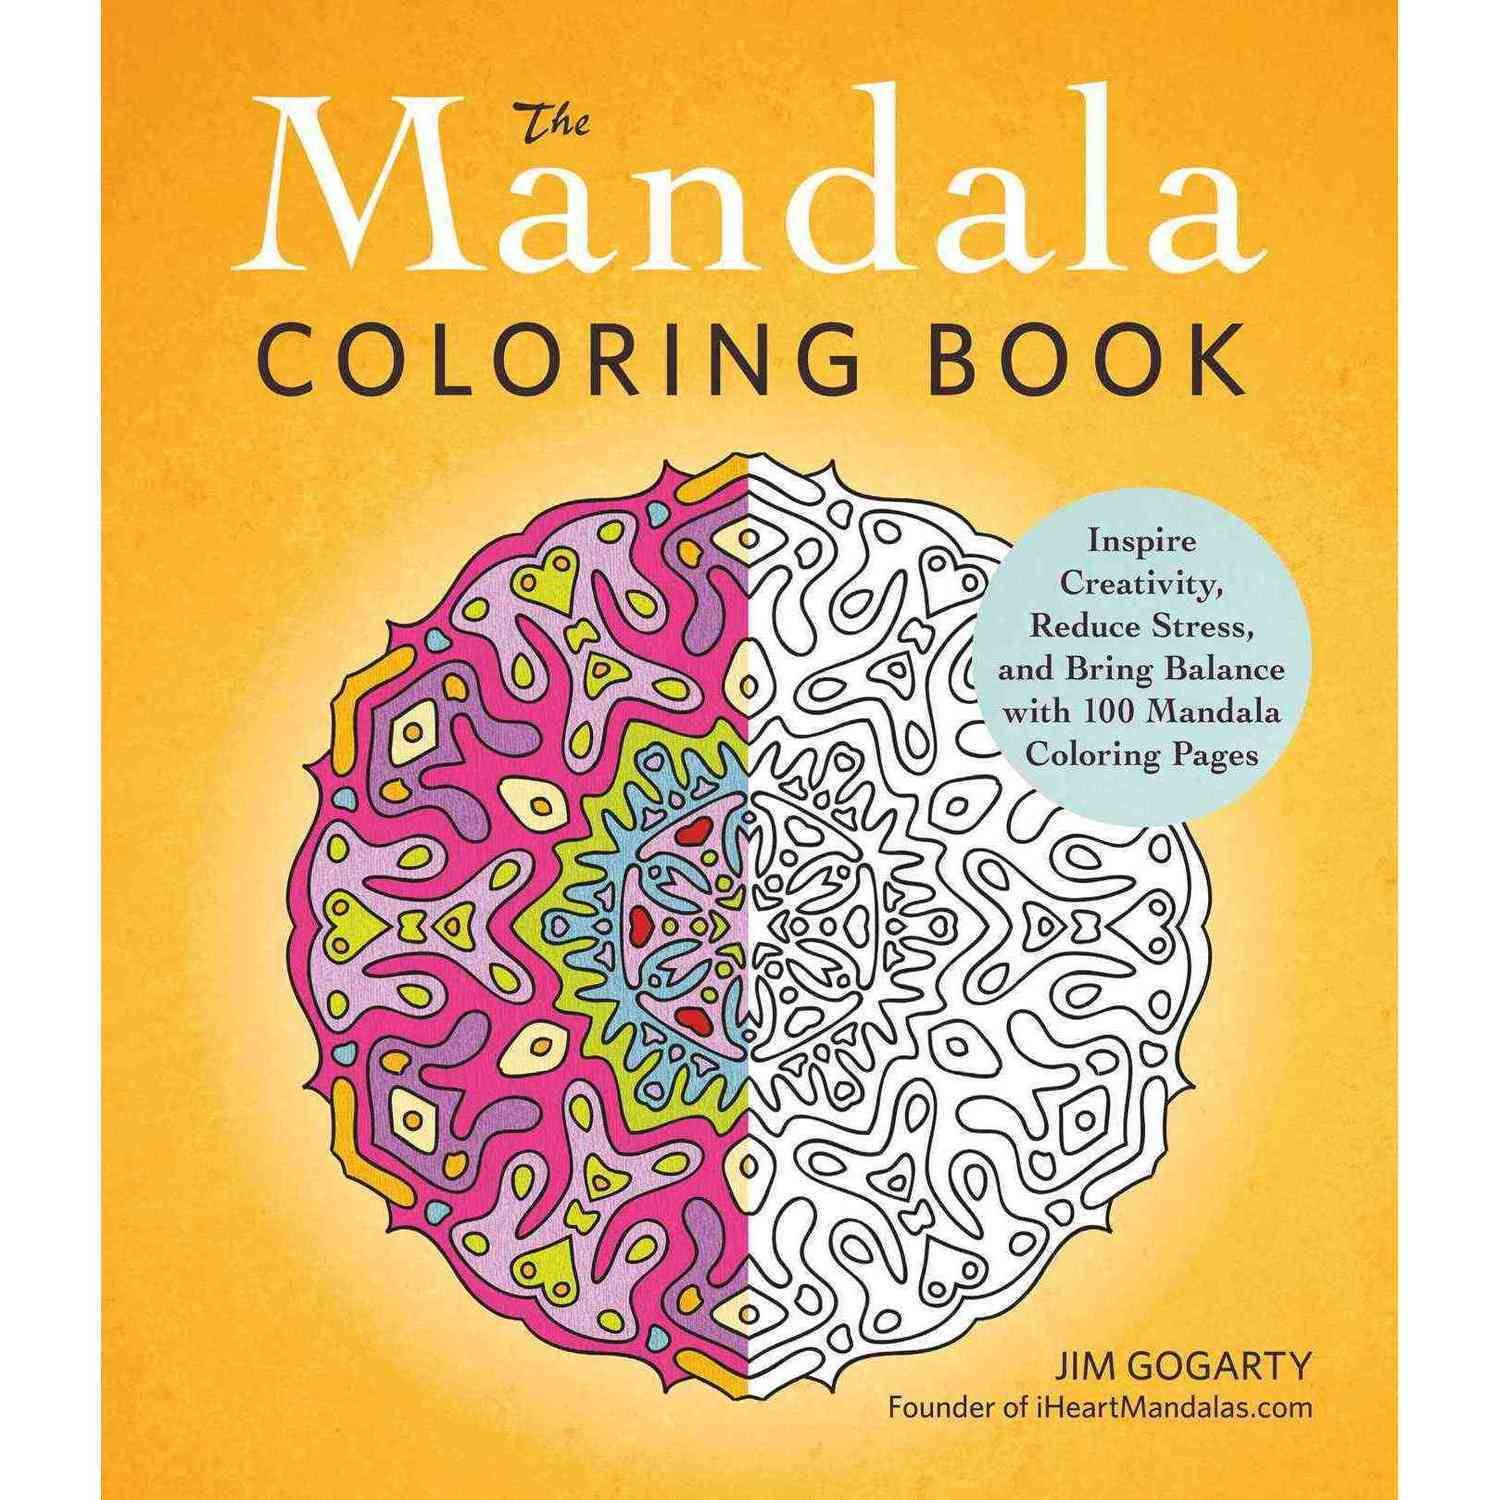 The mandala coloring book jim gogarty - The Mandala Adult Coloring Book Inspire Creativity Reduce Stress And Bring Balance With 100 Mandala Coloring Pages Walmart Com